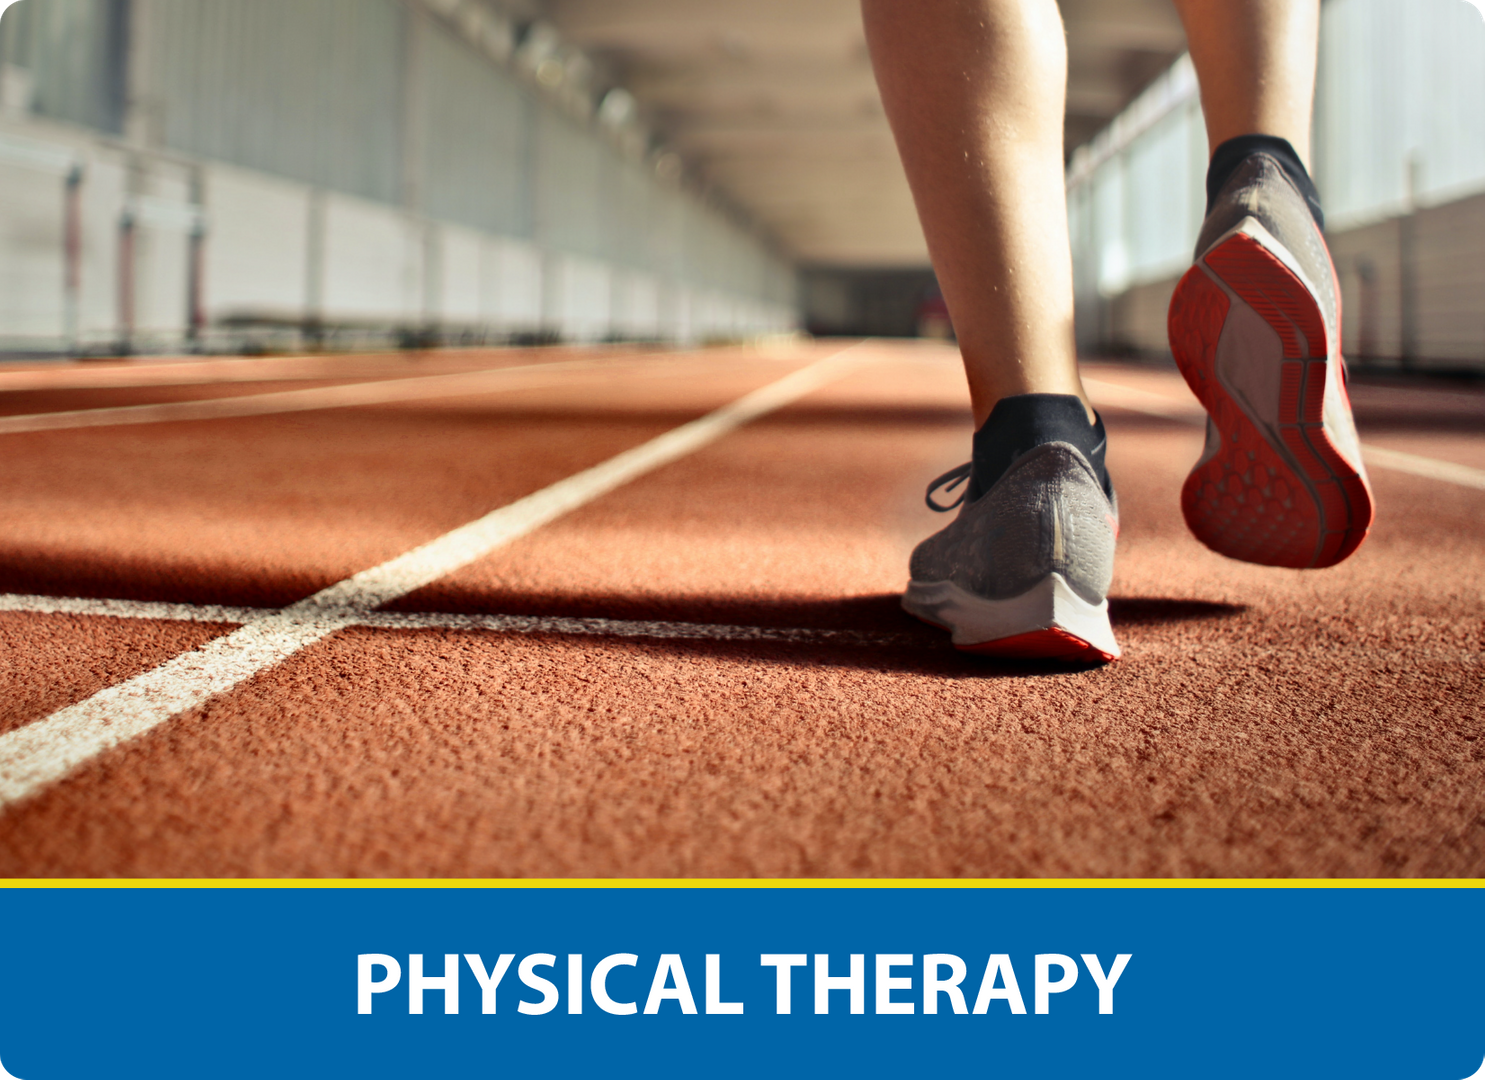 Physical Therapy: Shoes mid-run